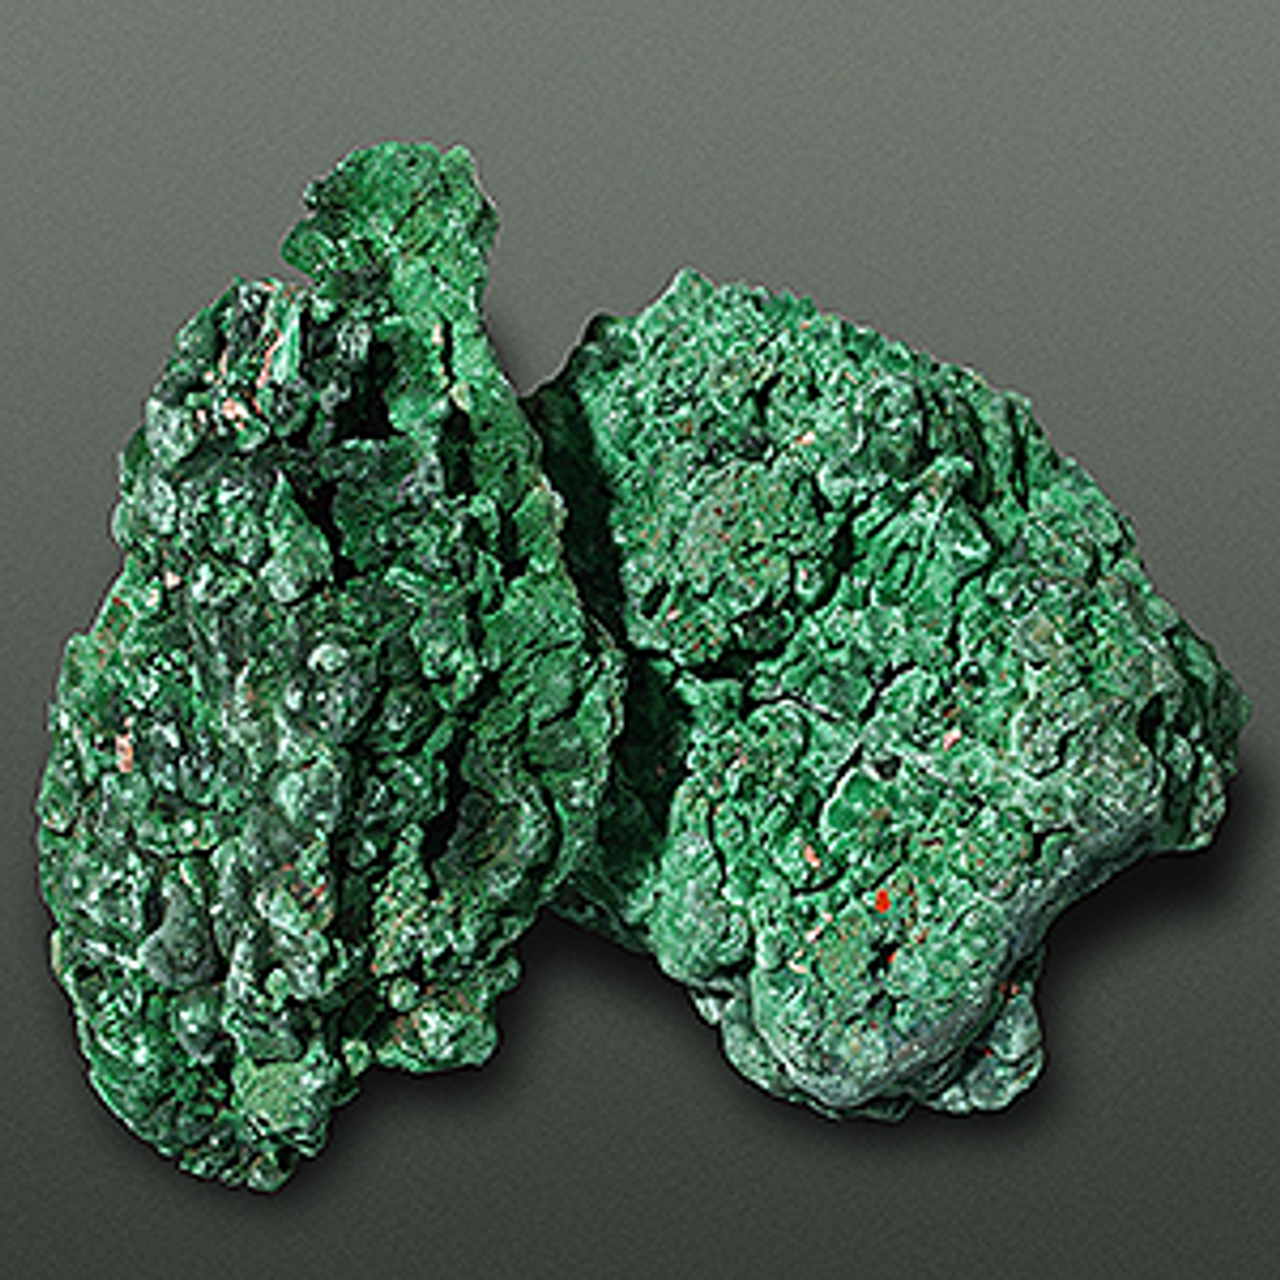 Malachite pigments